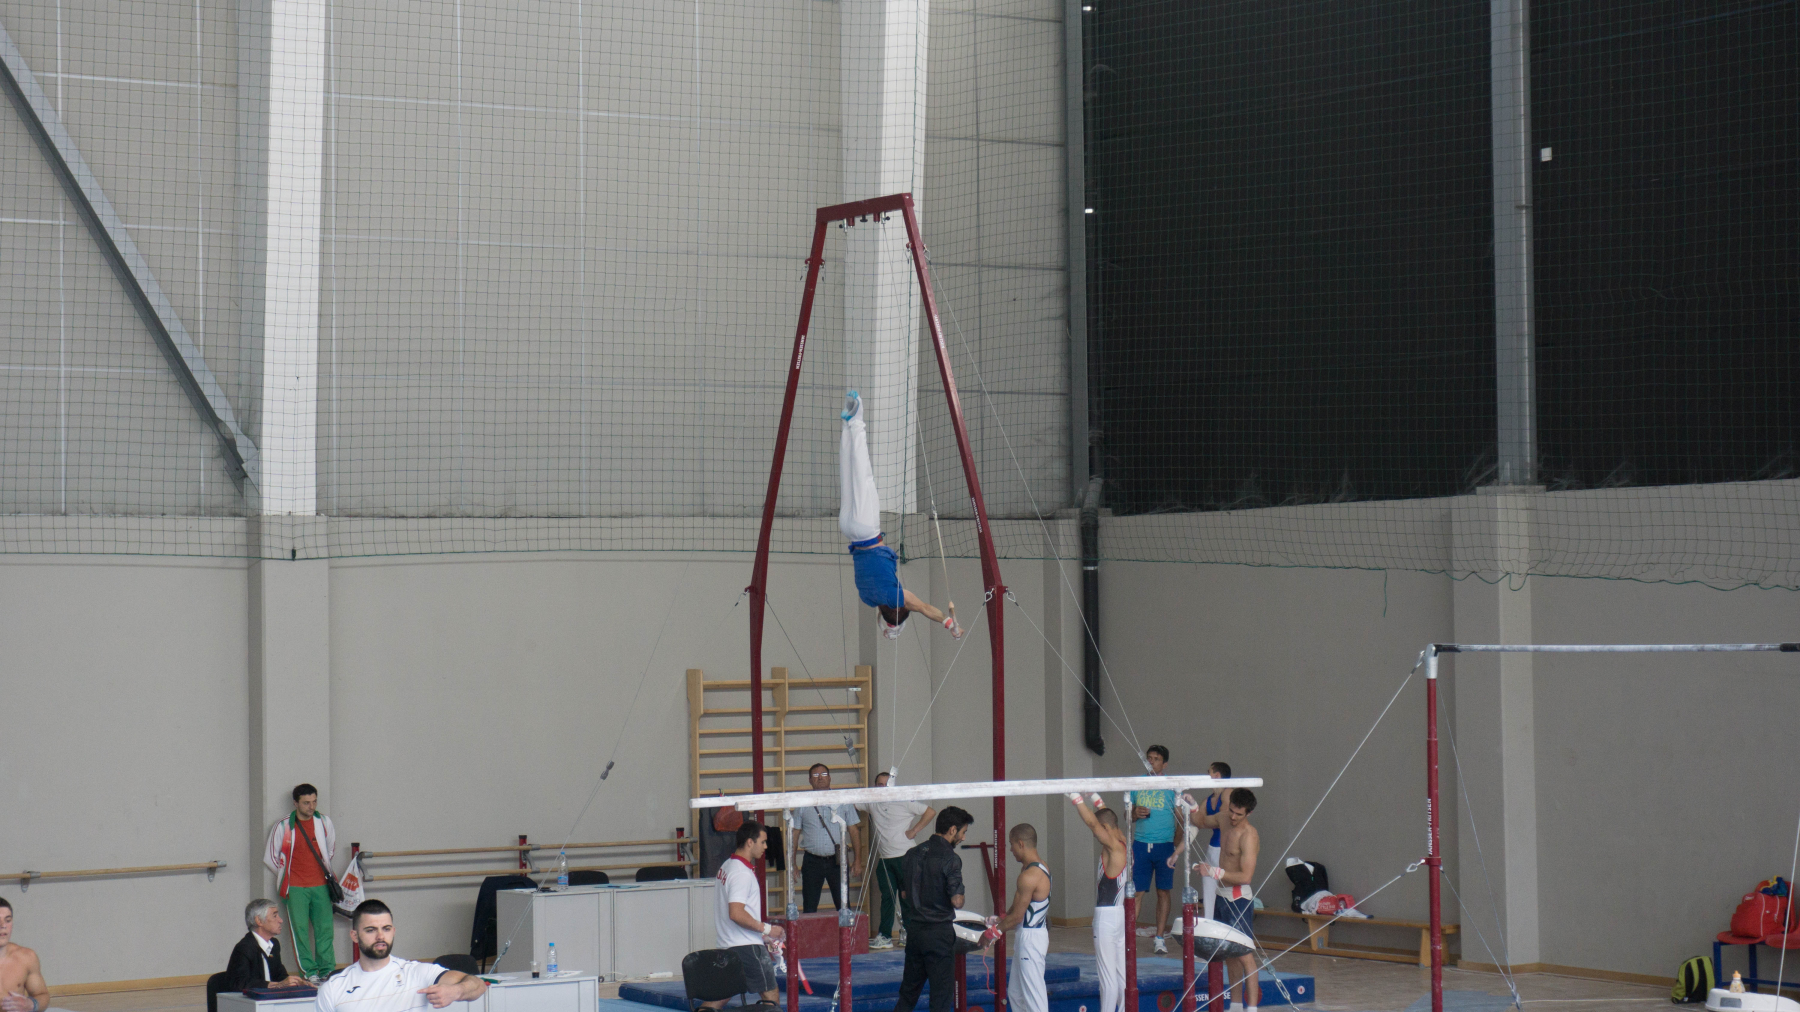 Gymnastics at Arena Armeec